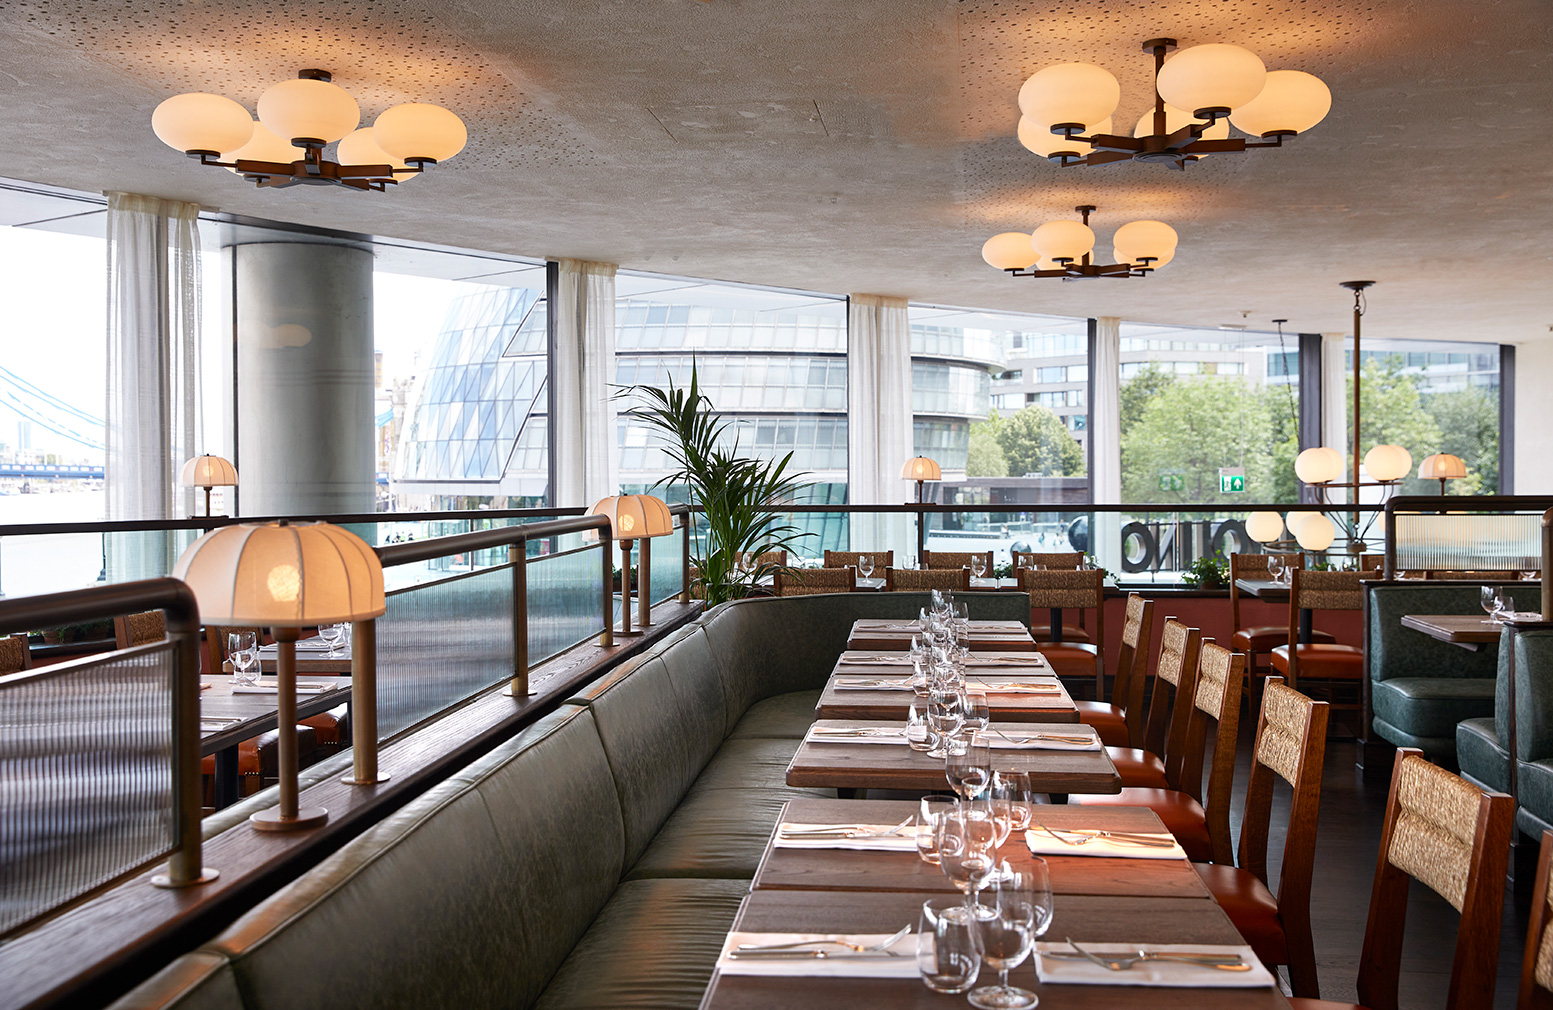 London restaurant Tavolino is a trattoria designed for locals